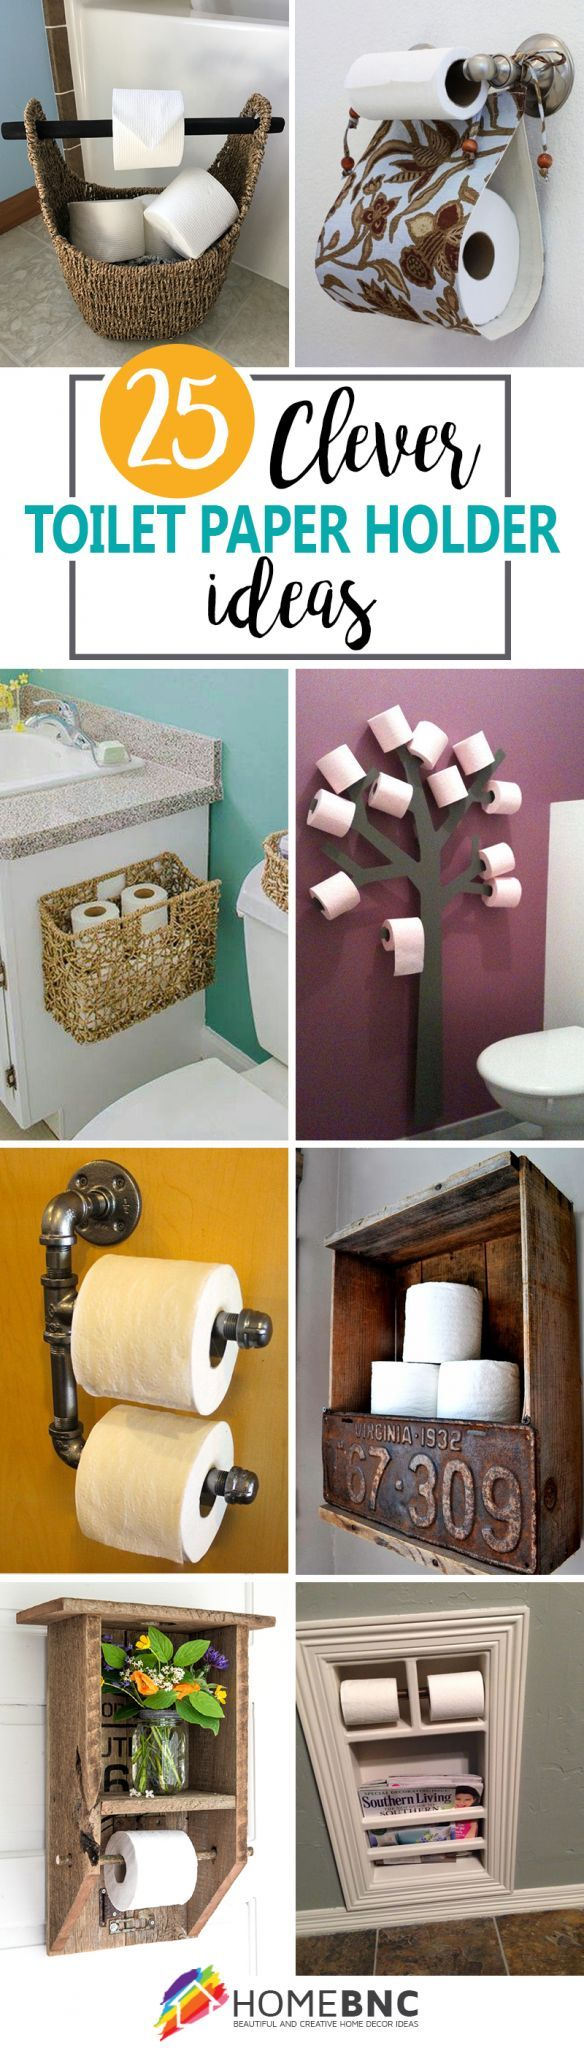 Toilet Paper Holder Designs- Great collection from DIY to buy & everything in between!